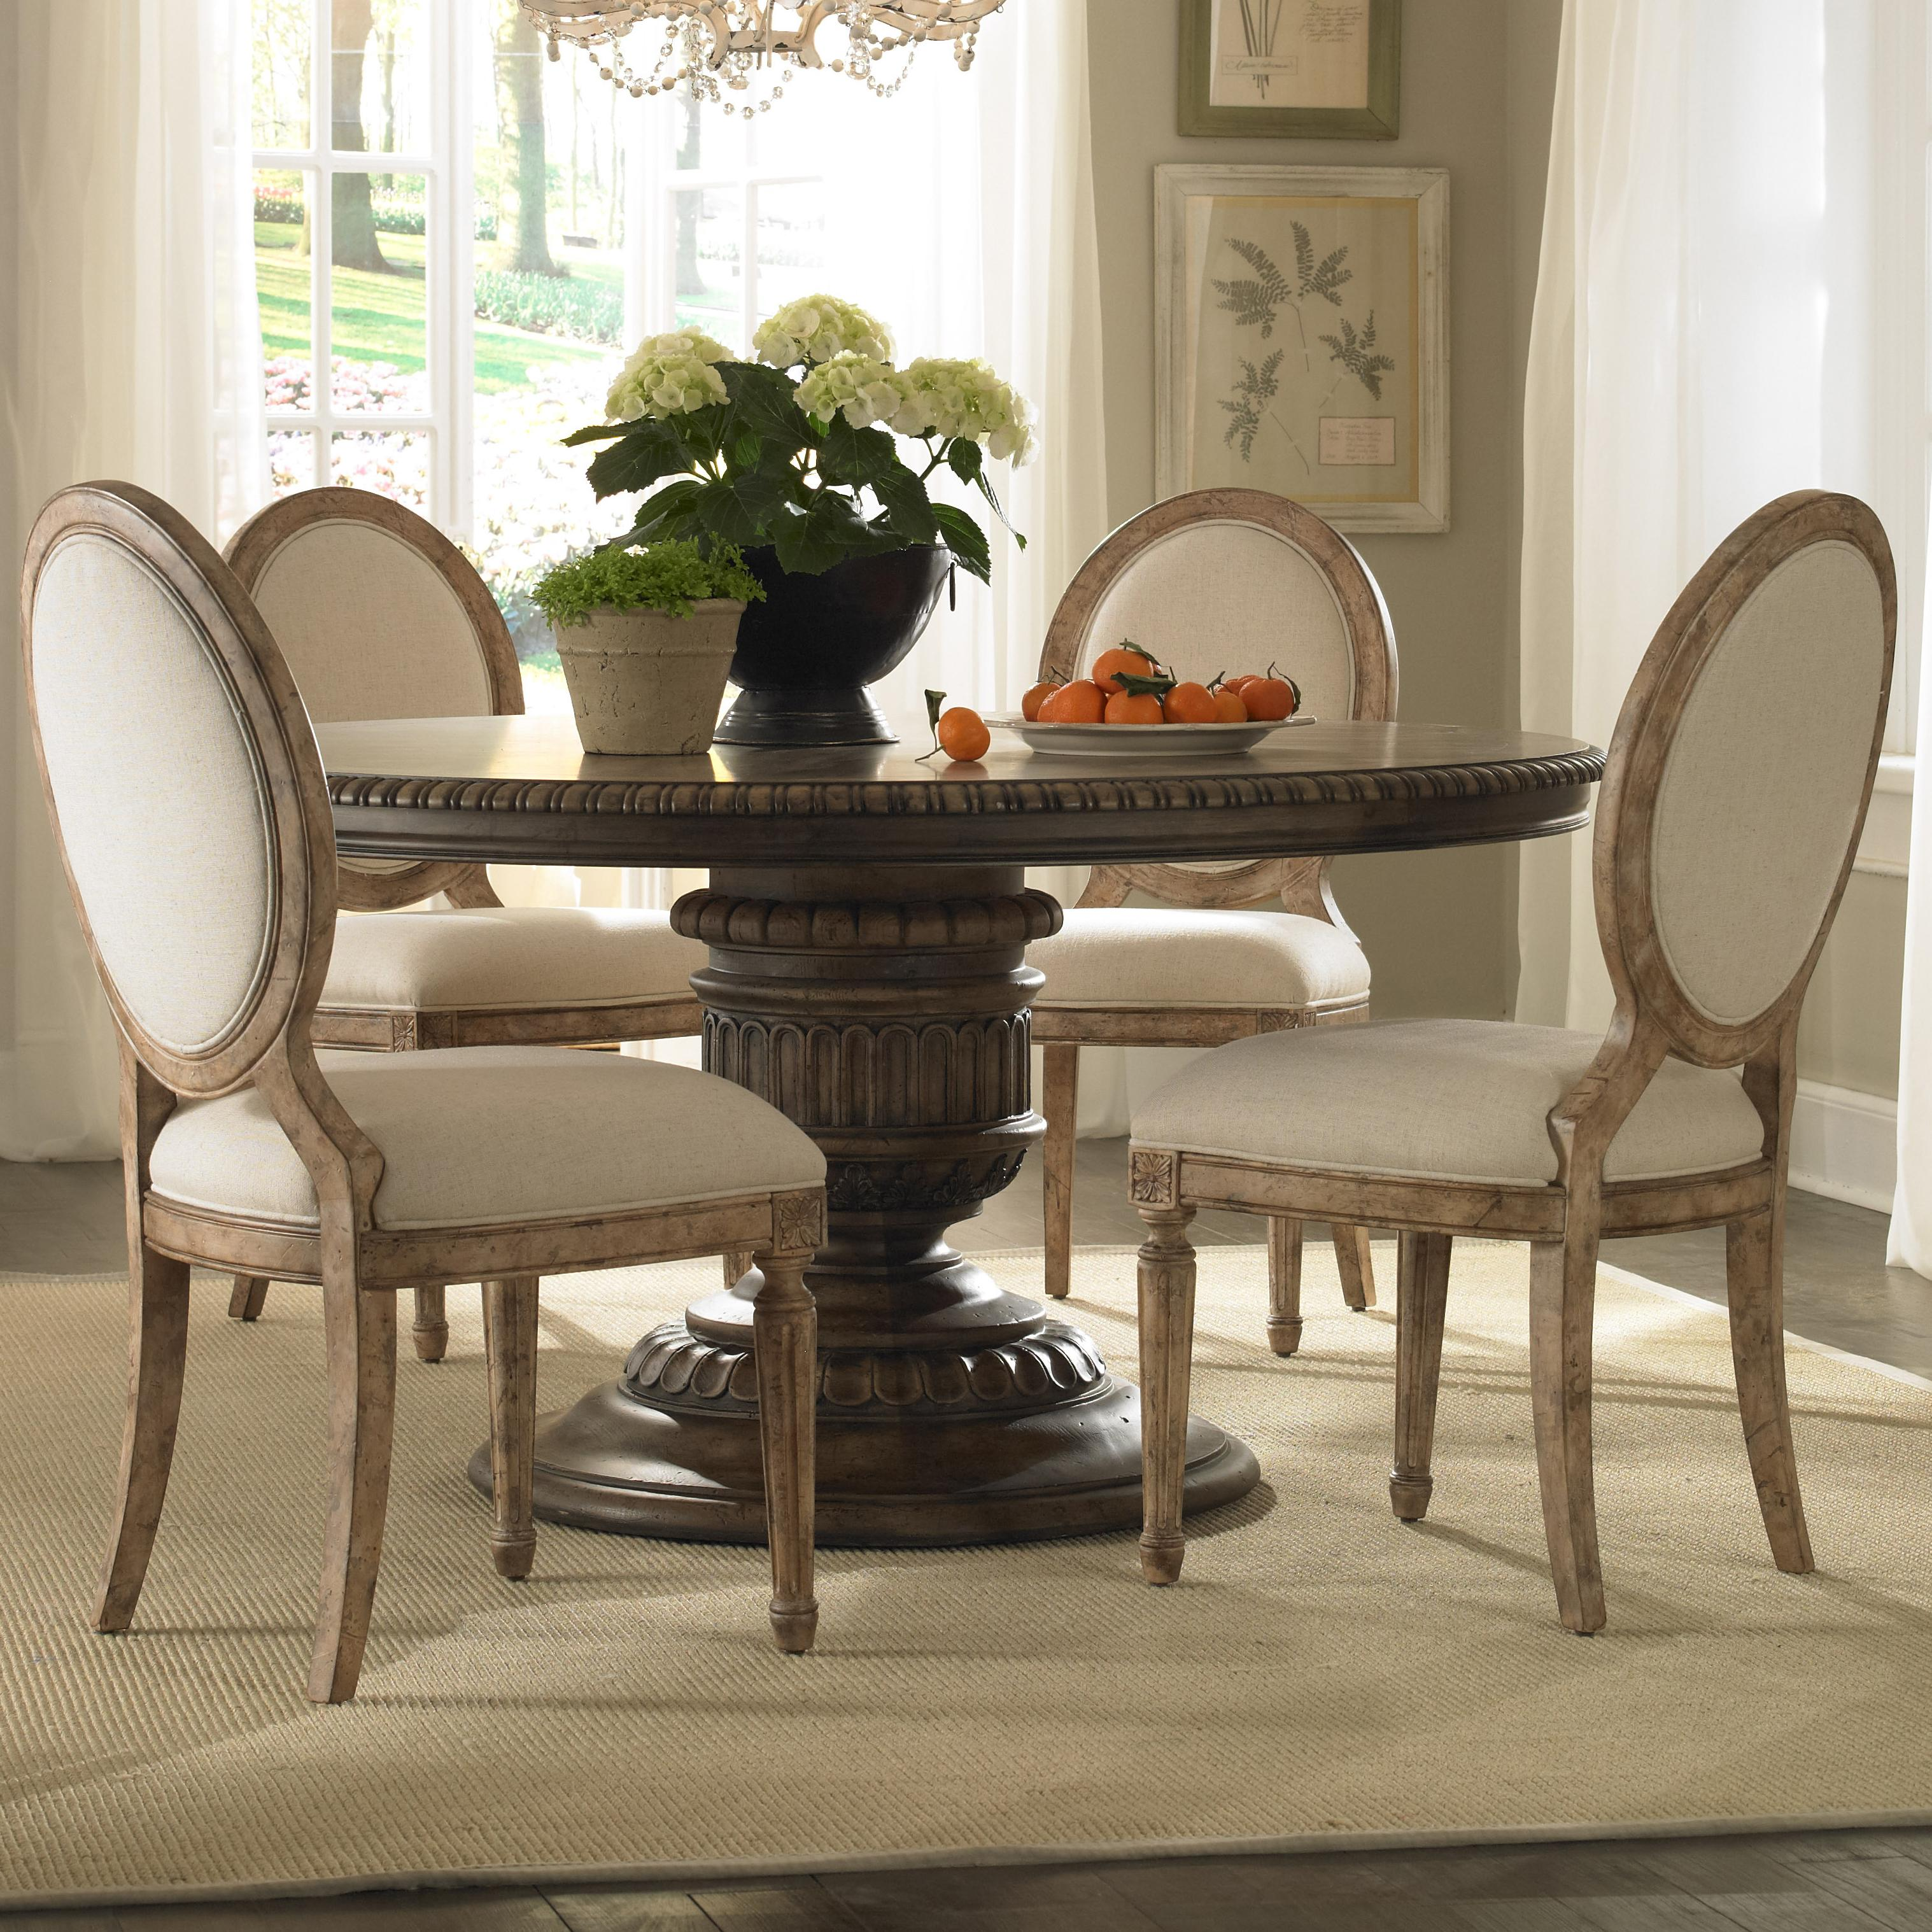 Pulaski Furniture Accentrics Home 5 Piece Table & Chair Set - Item Number: 201007+08+4x205005